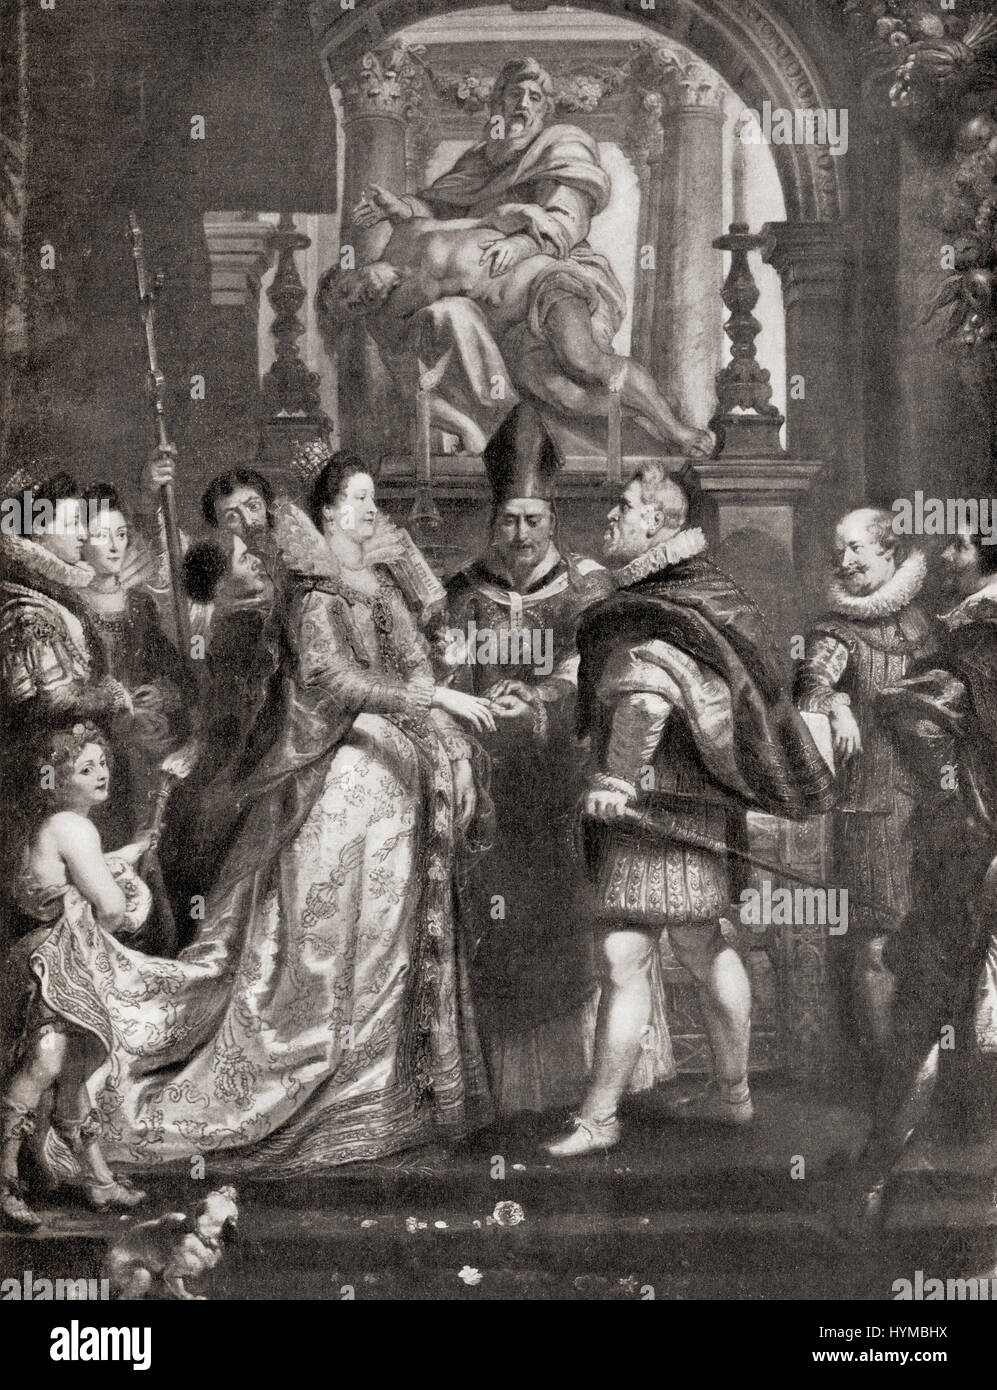 The Wedding by Proxy of Marie de' Medici to King Henry IV, after the painting by Peter Paul Rubens. Marie de' - Stock Image